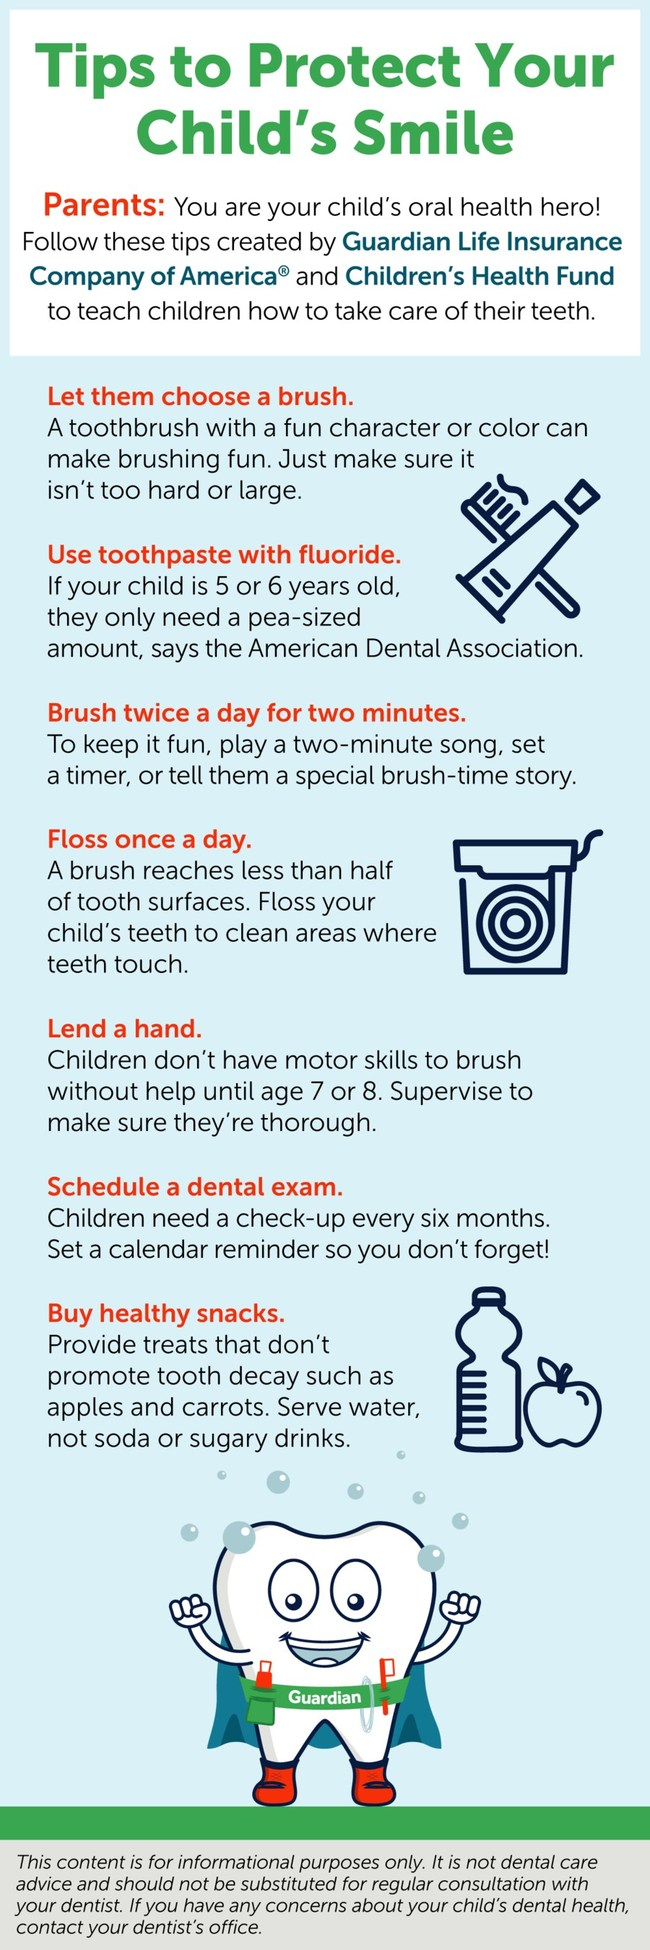 Oral Health Tips for Parents and Guardians